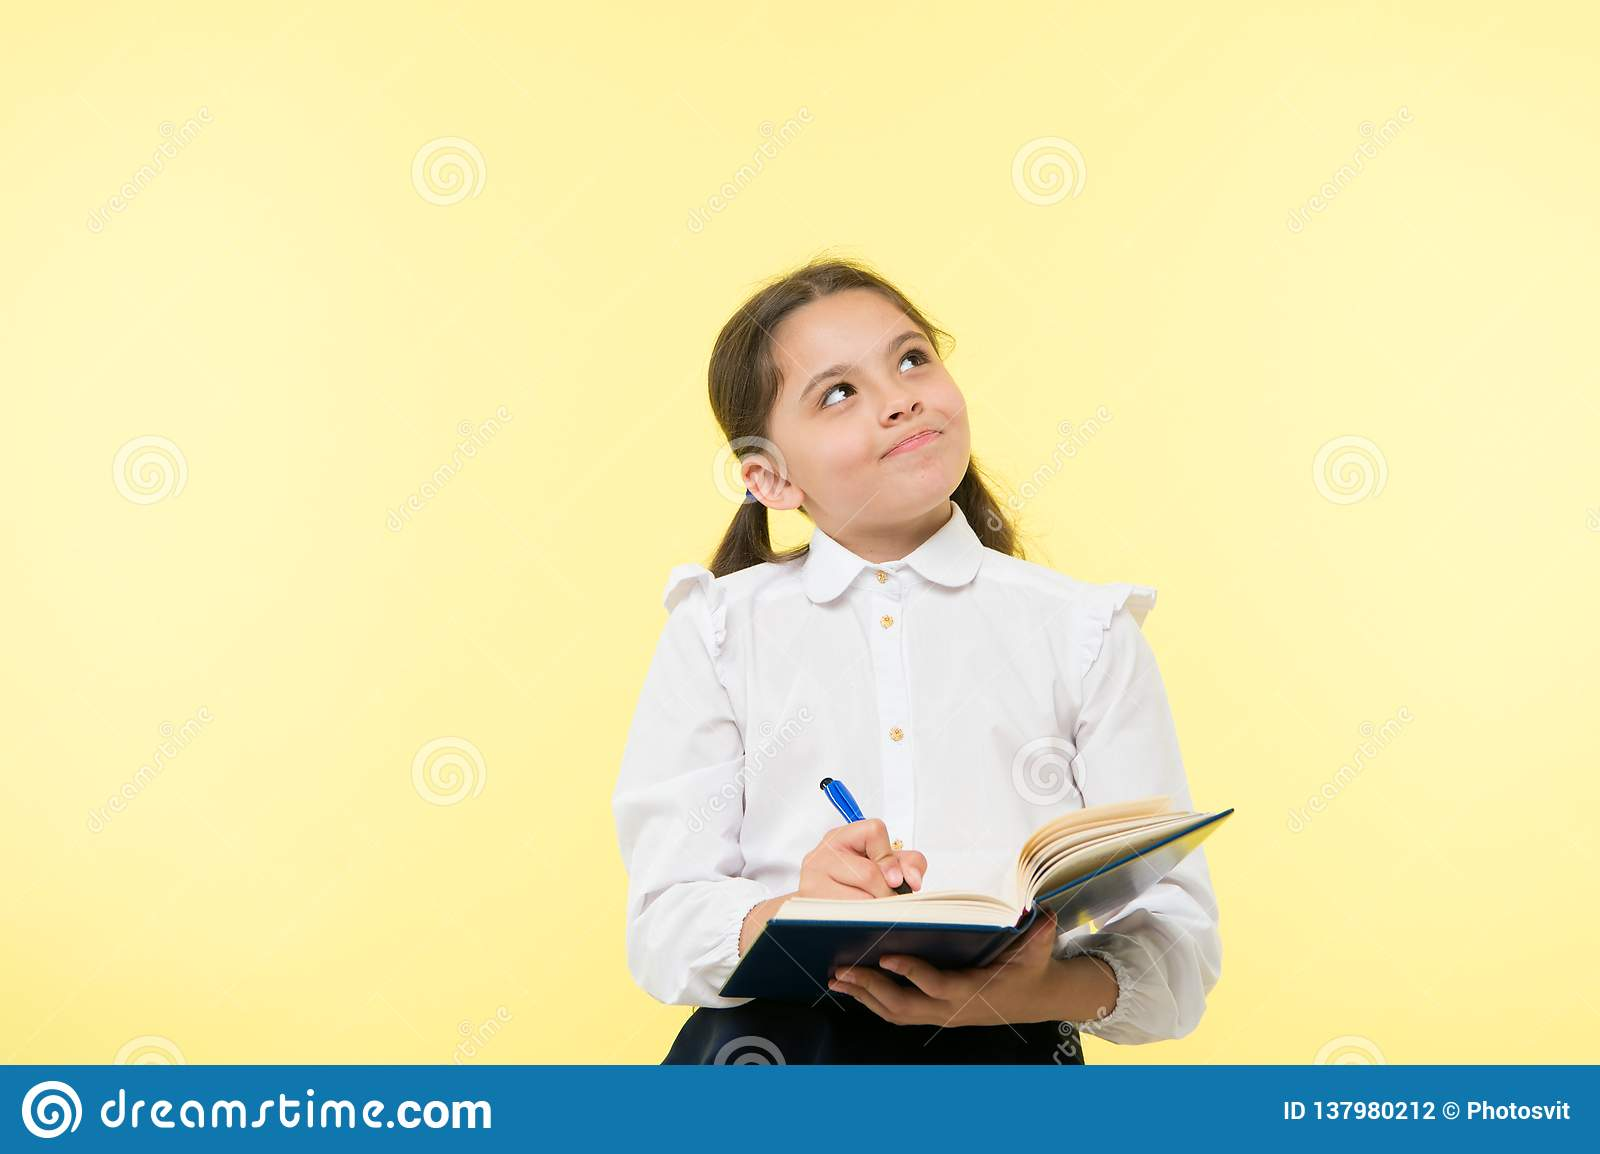 Child school uniform kid doing homework. Child girl school uniform clothes hold book and pen. Girl cute write down idea